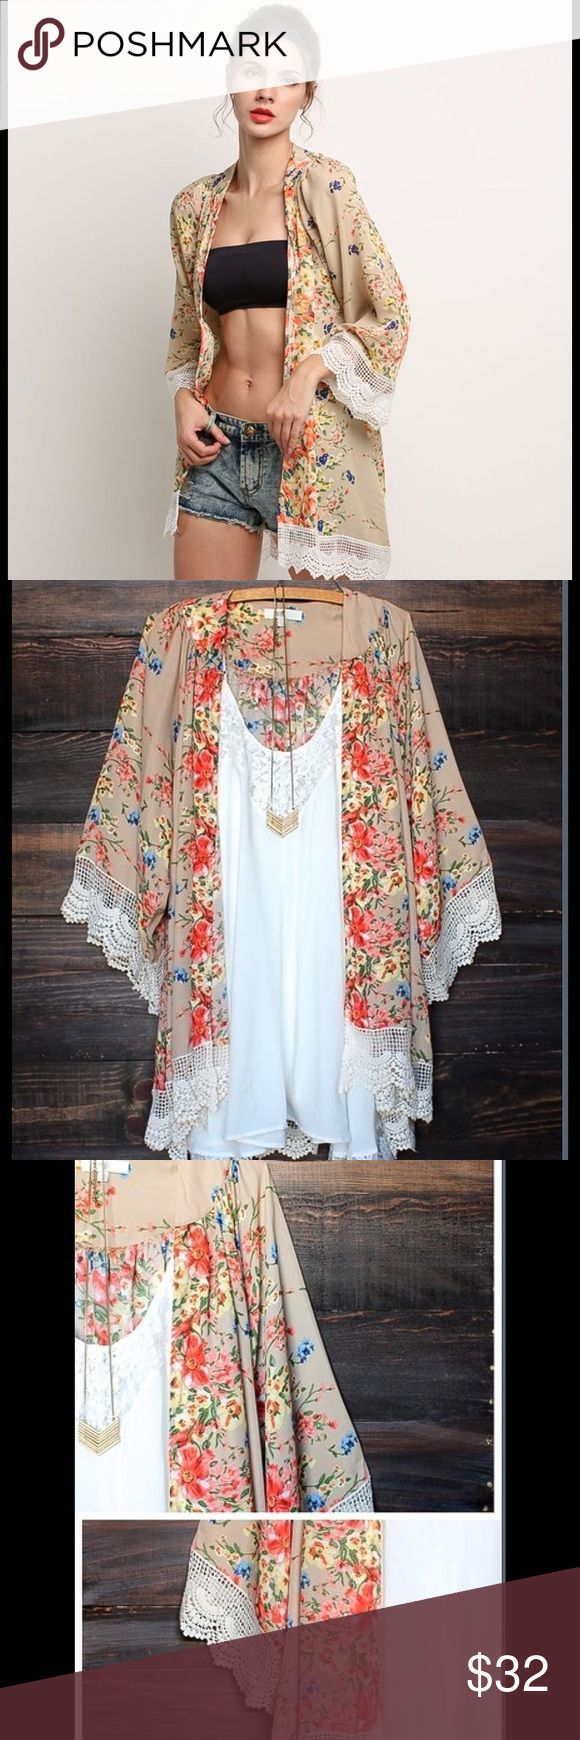 💧NWT Floral Print Loose Chiffon Cardigan Top Floral Print Chiffon Cardigan Top.  Material: Chiffon and Lace, Multicolor Floral Print.  So versatile for the Spring and Summer!!  Lovely!!  NWT!! Tops